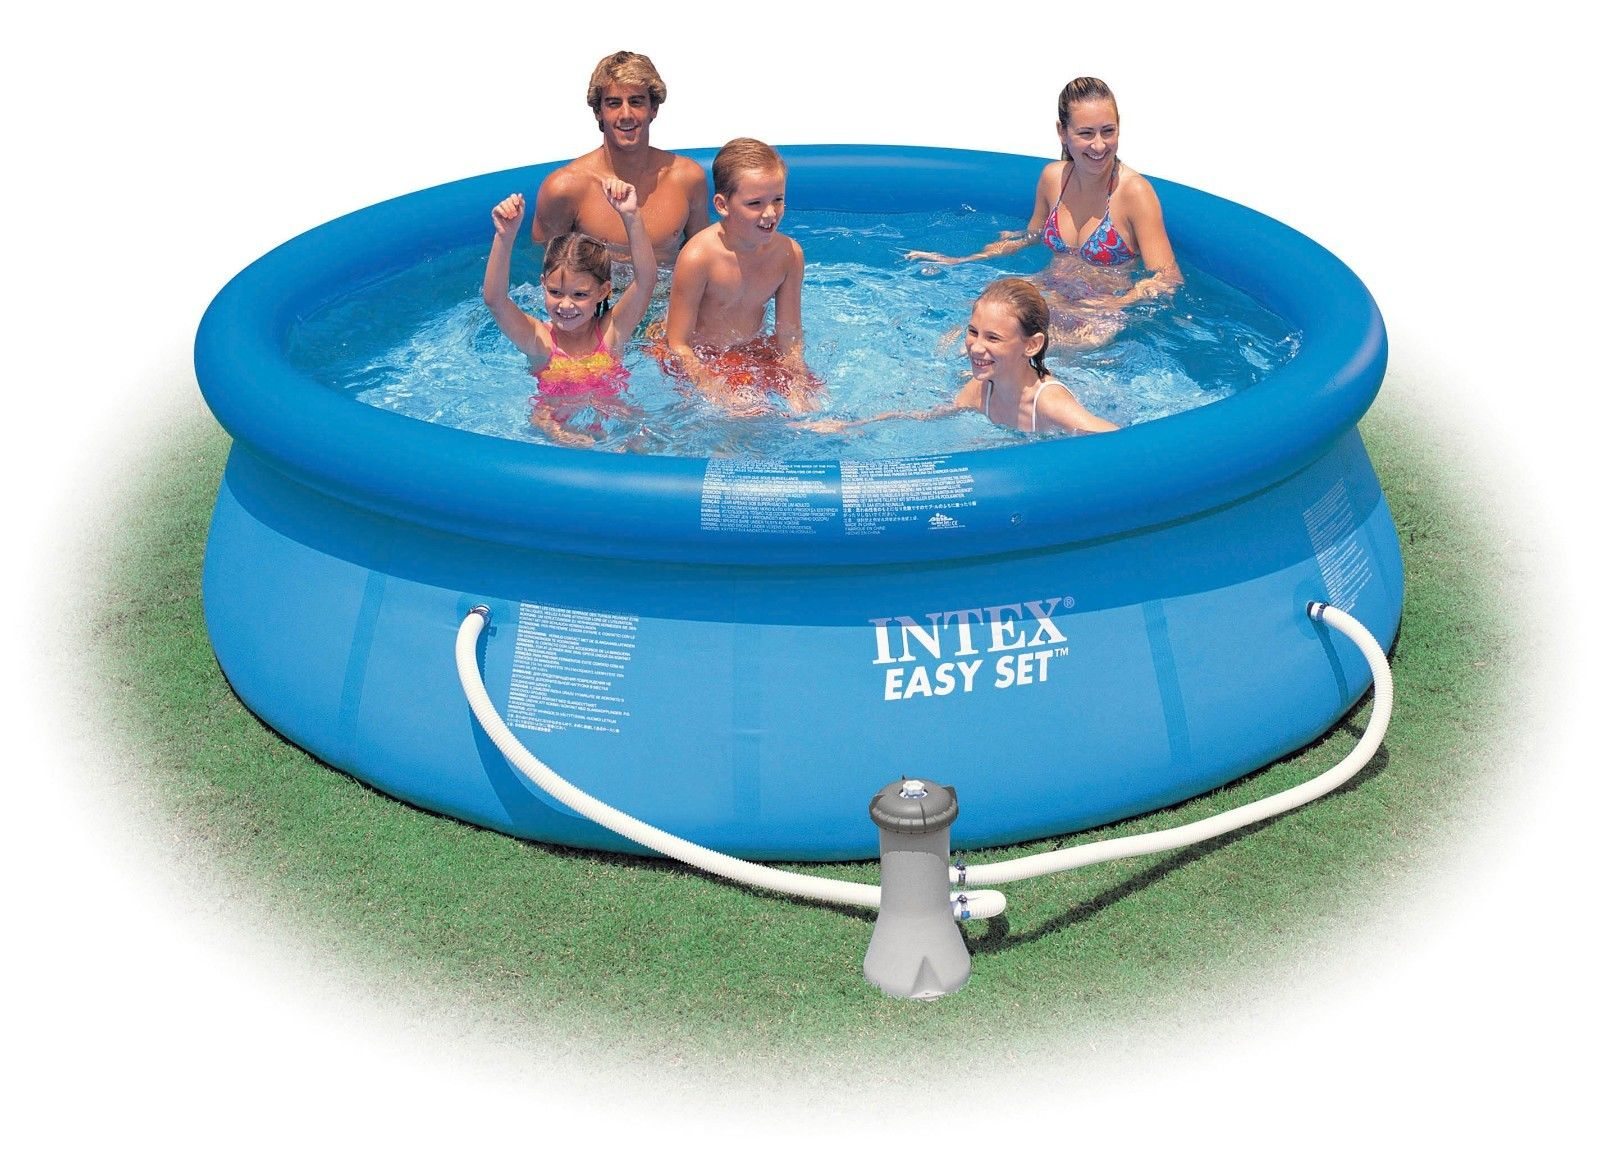 Intex 10 x 30 easy set above ground swimming pool w 530 for Intex pool handler